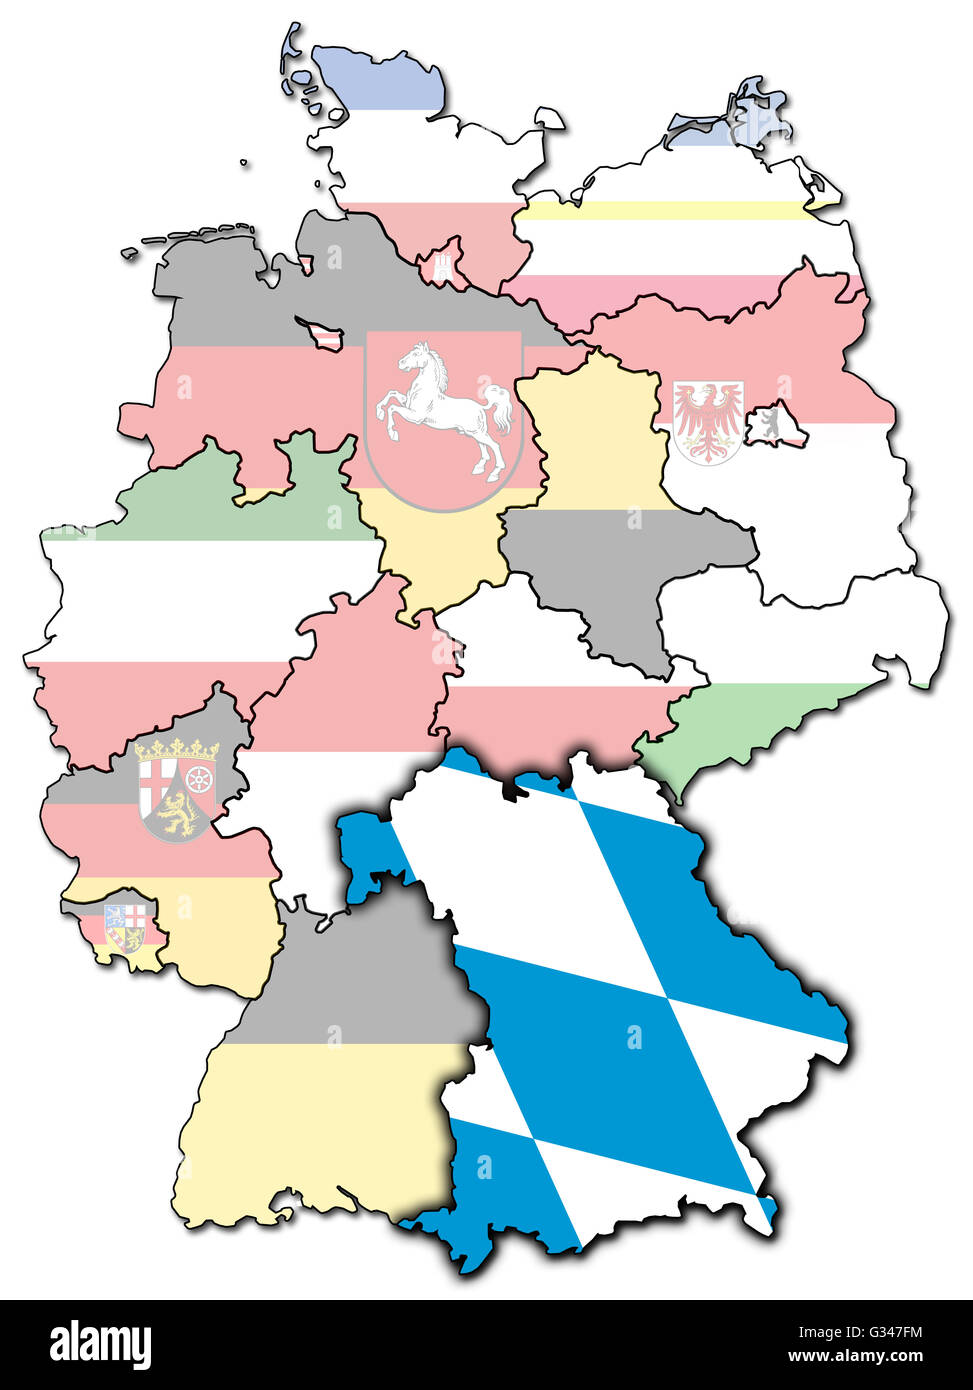 Bavaria On Old Administration Map Of German Provinces States - Germany map bavaria